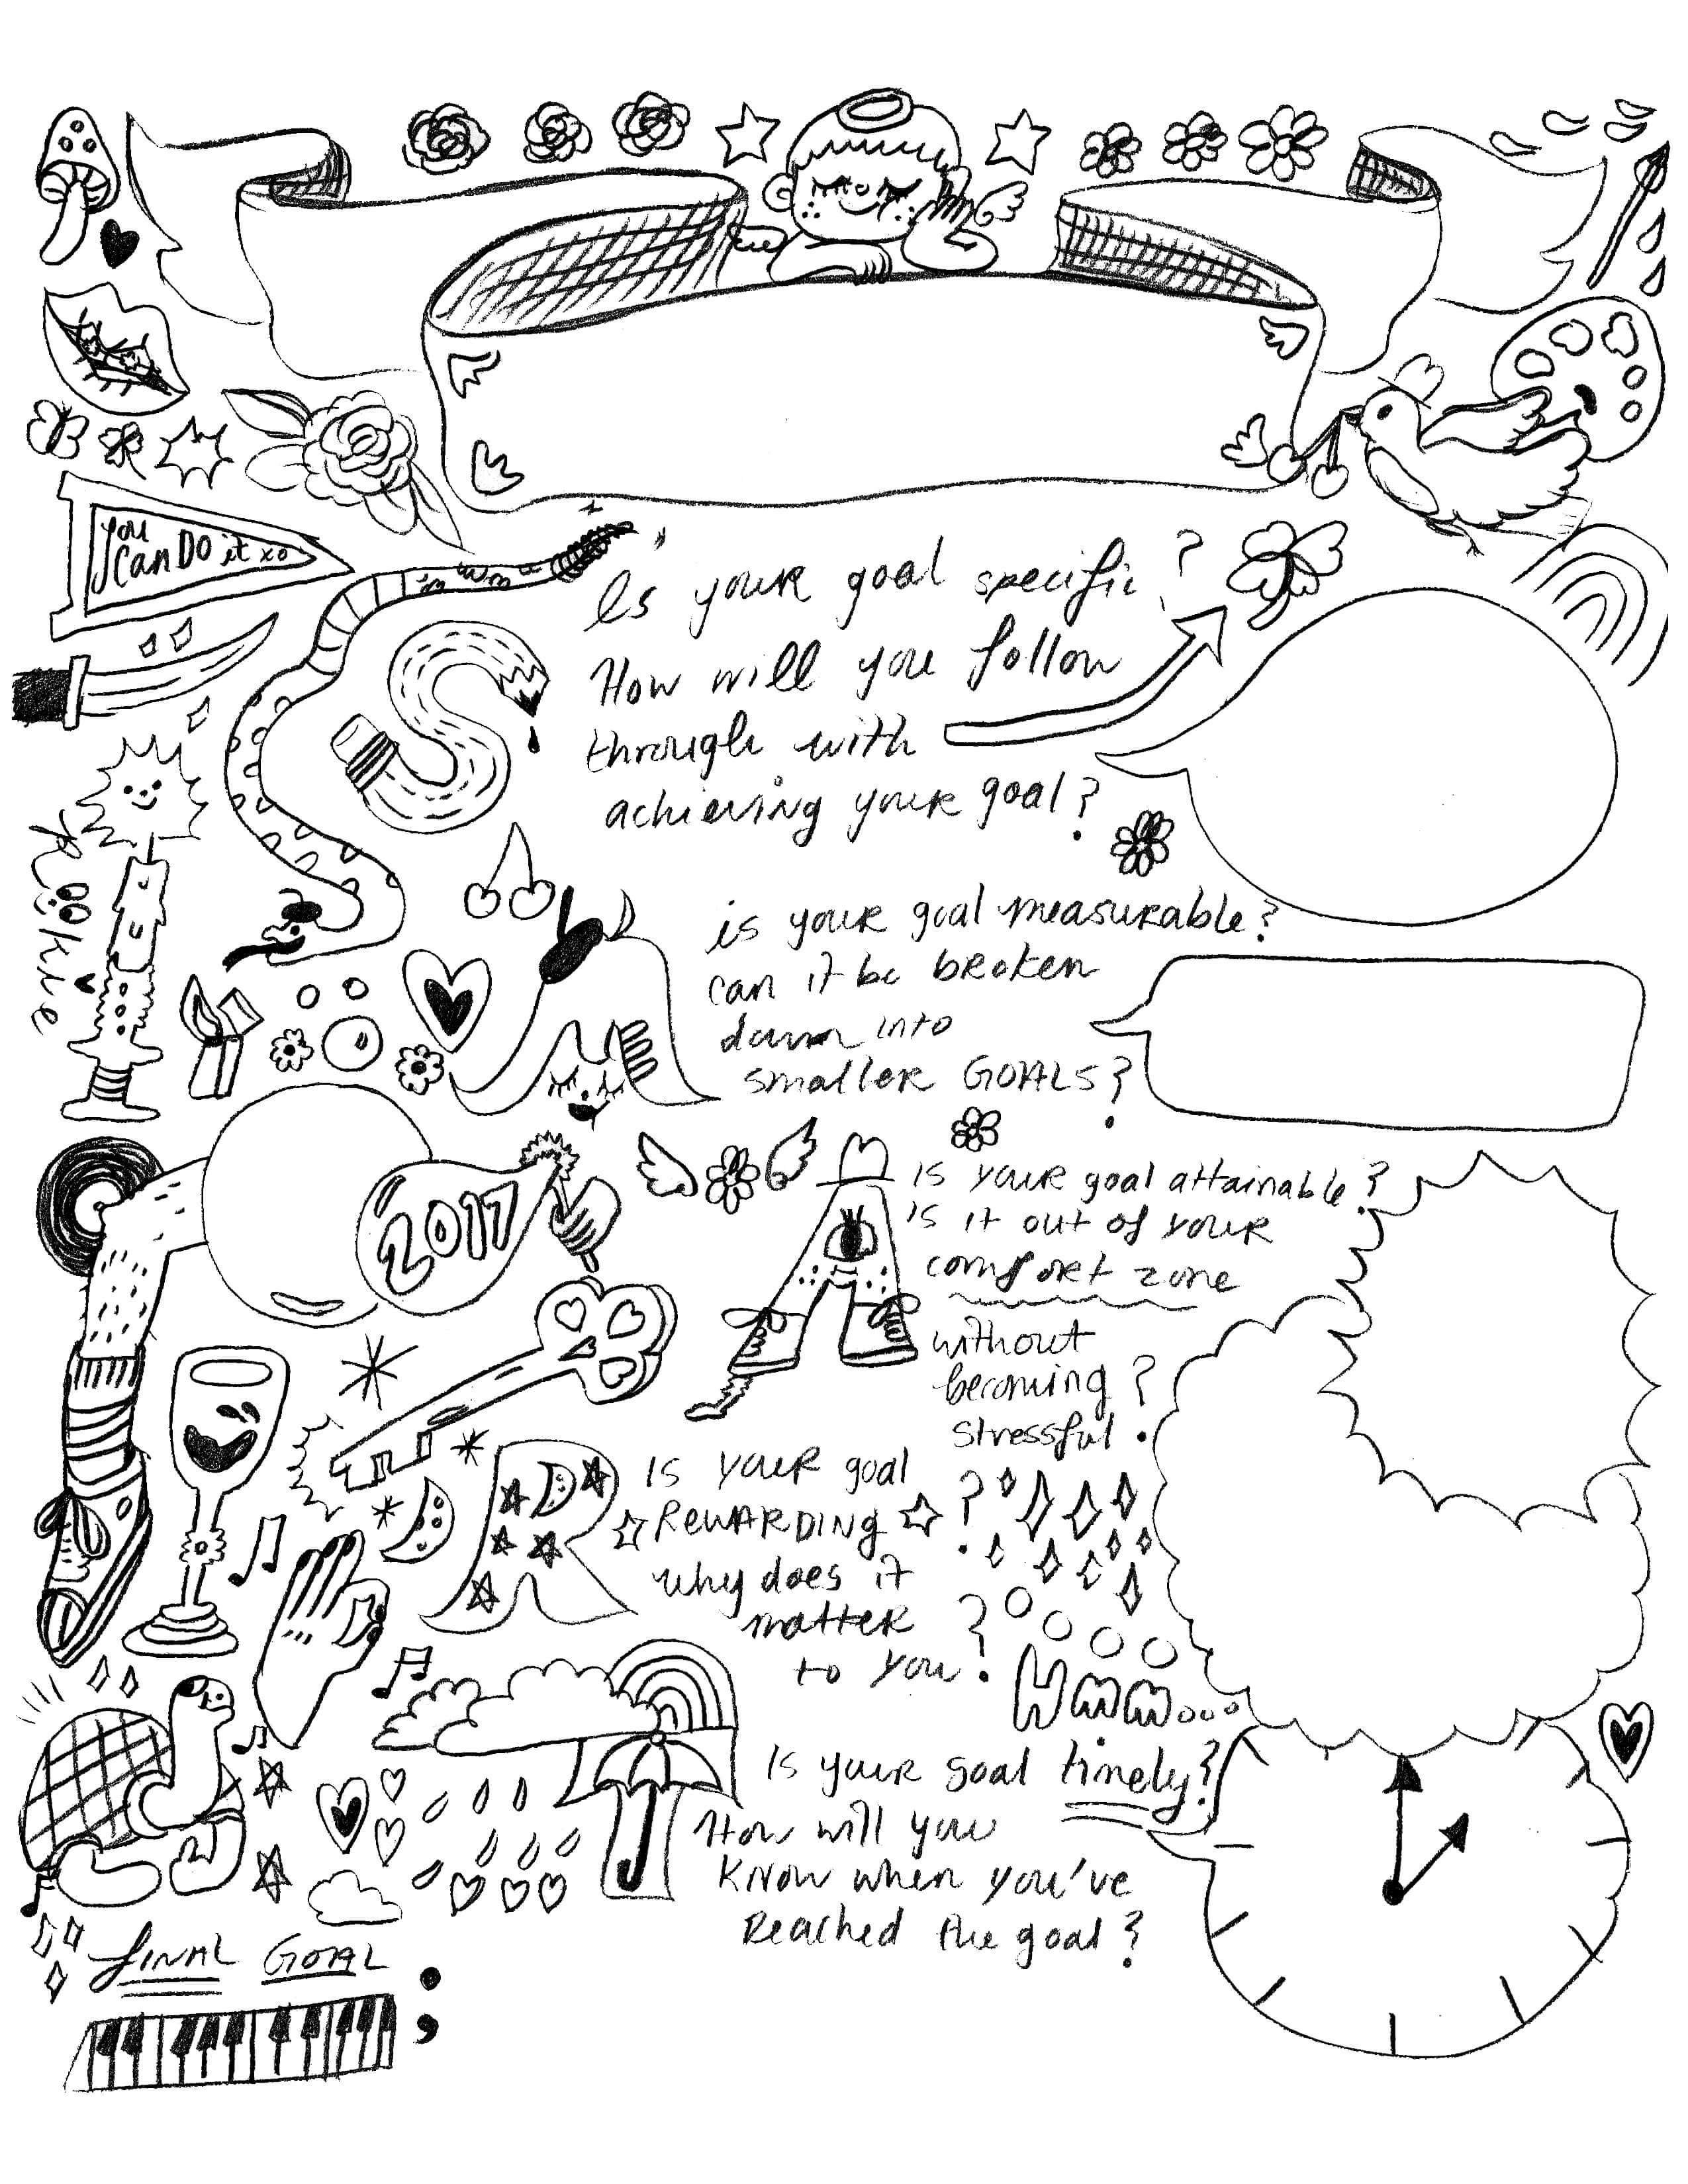 This Coloring Page Will Help You Set Goals